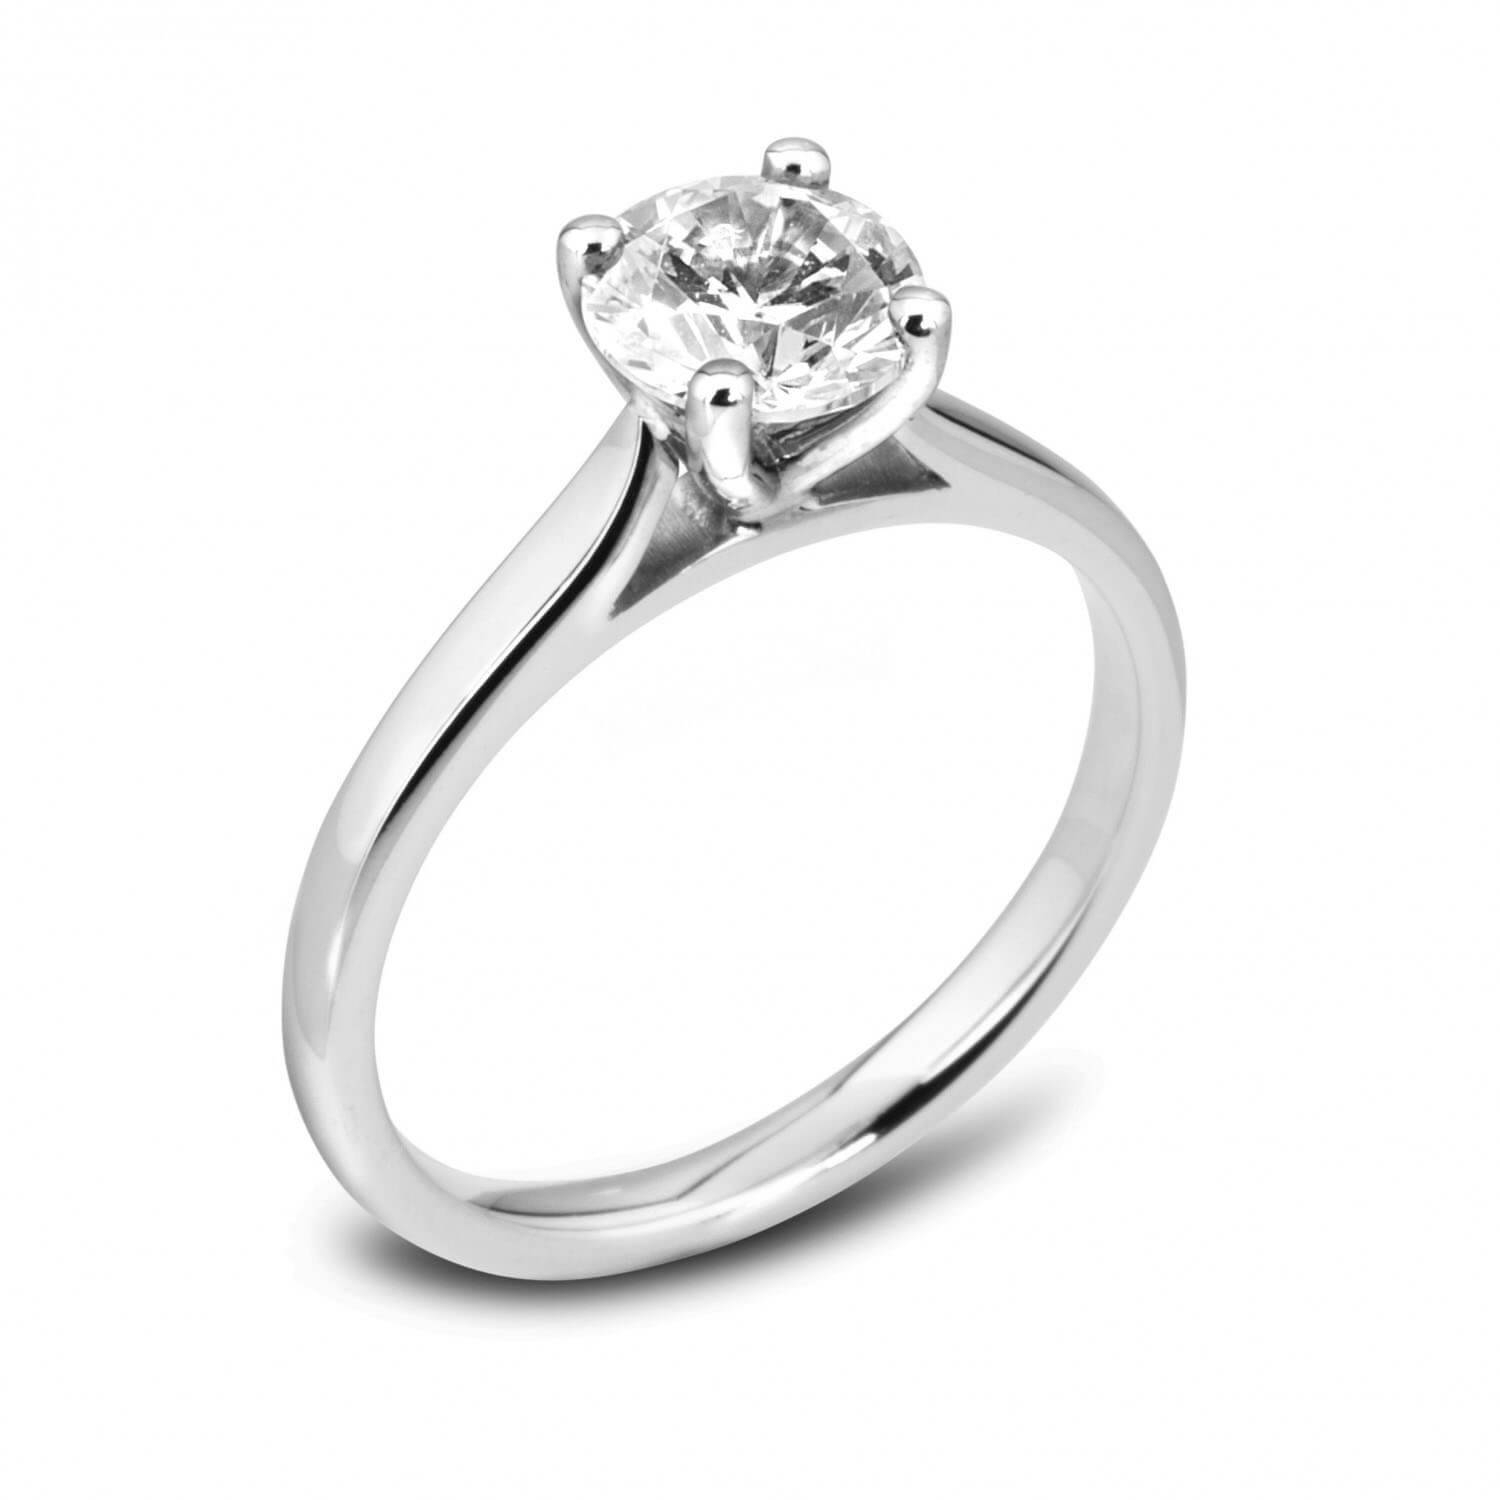 Classic Solitaire Diamond Engagement Ring For Solitare Diamond Engagement Rings (Gallery 12 of 15)